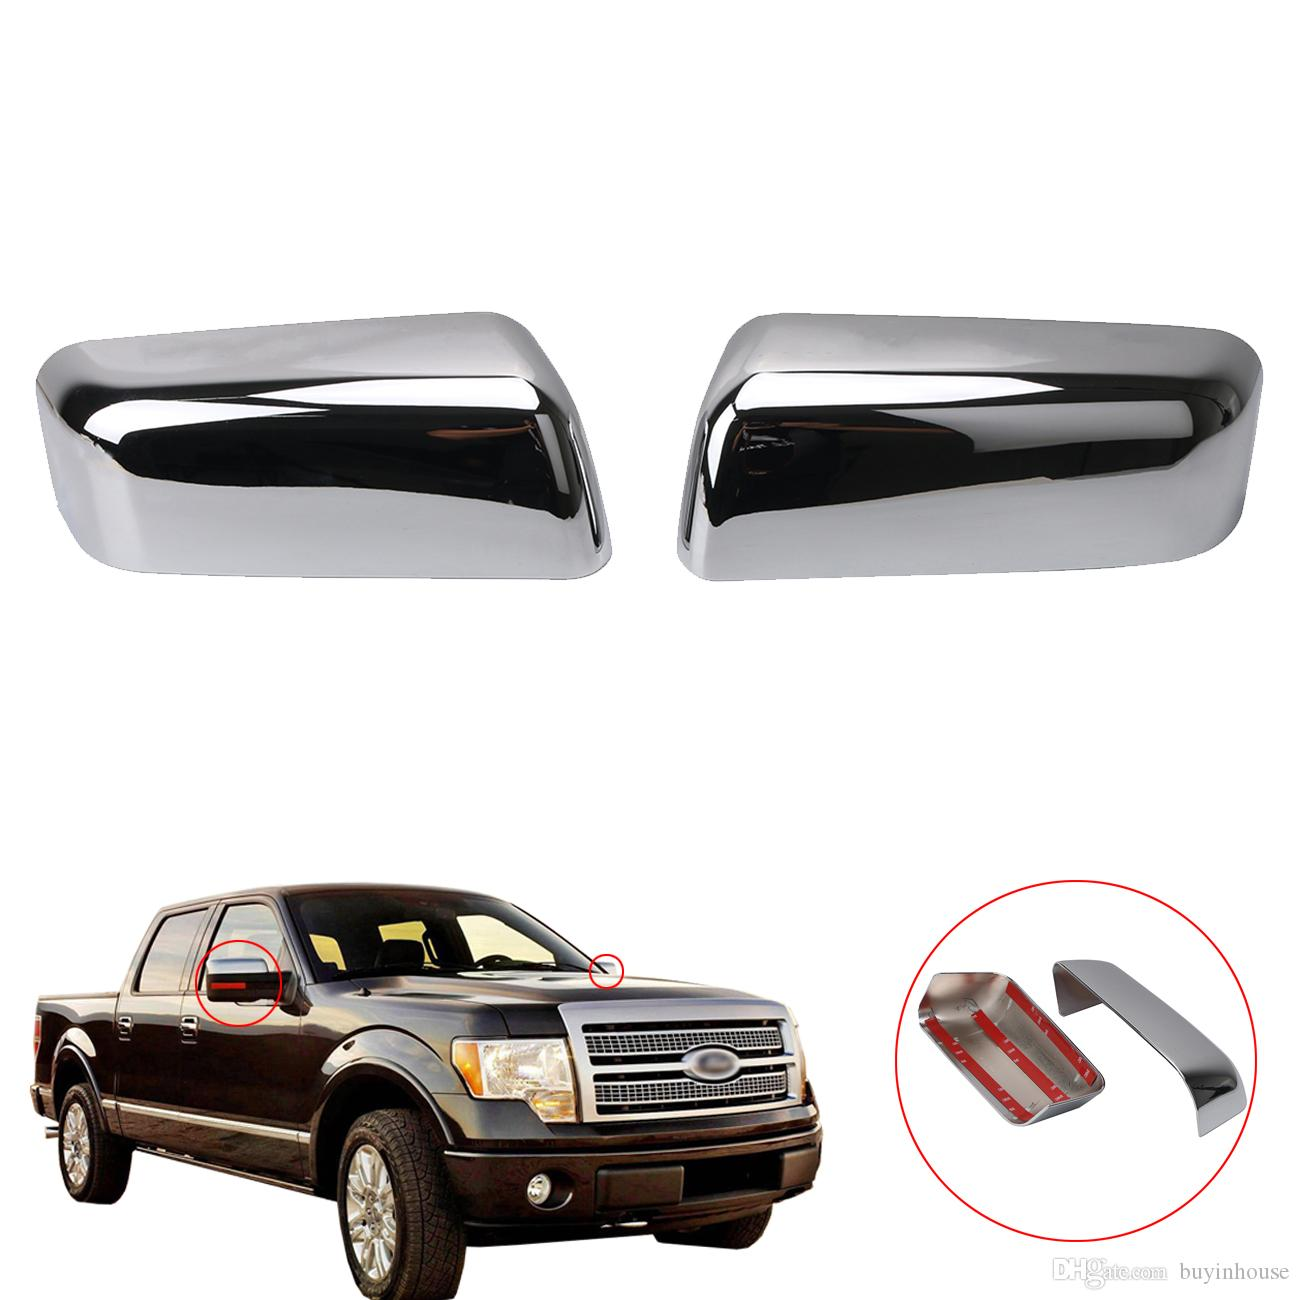 Triple Chrome Plated Abs Top Half Mirror Cap Cover Overlays For Ford F  Truck Xlt Fx Rc From Buyinhouse   Dhgate Com